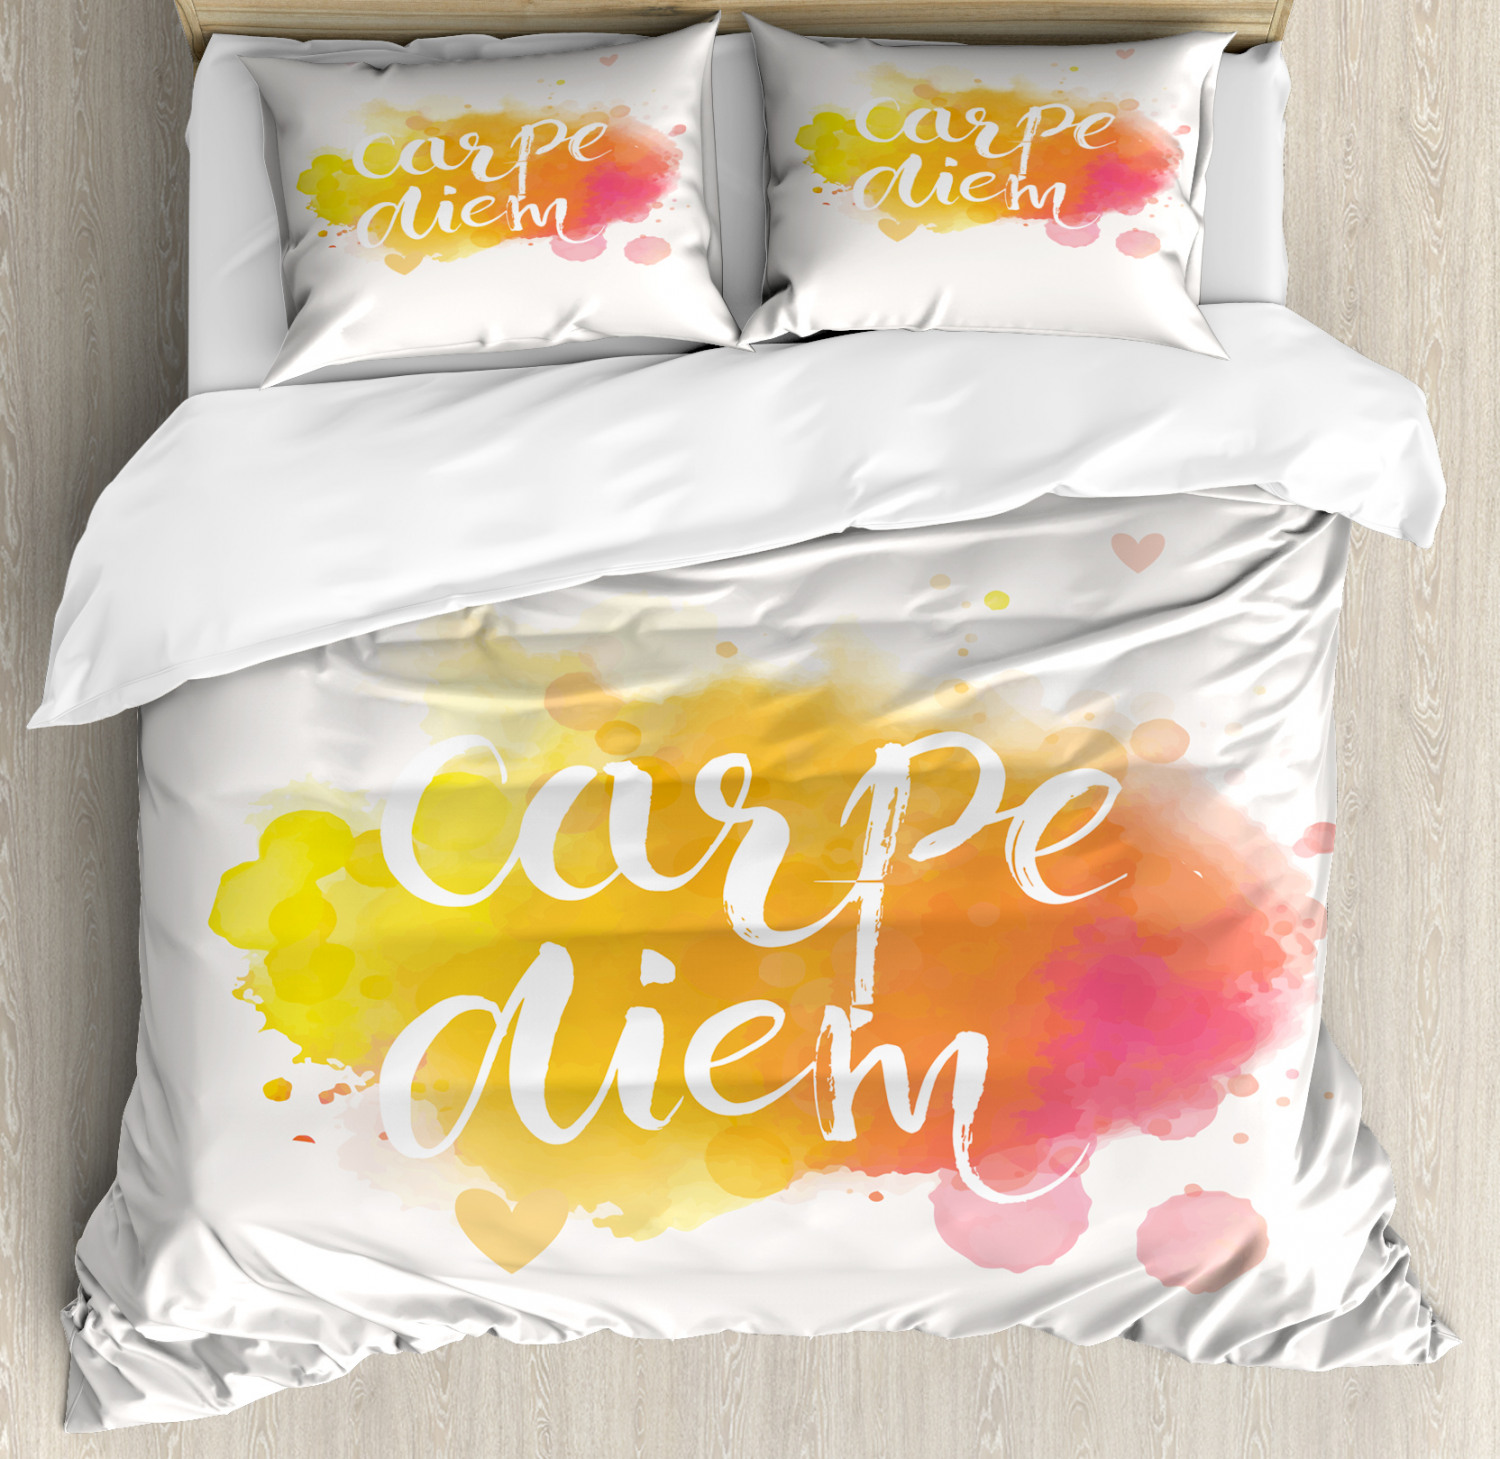 Yellow and White King Size Duvet Cover Set Carpe Diem Art with 2 Pillow Shams